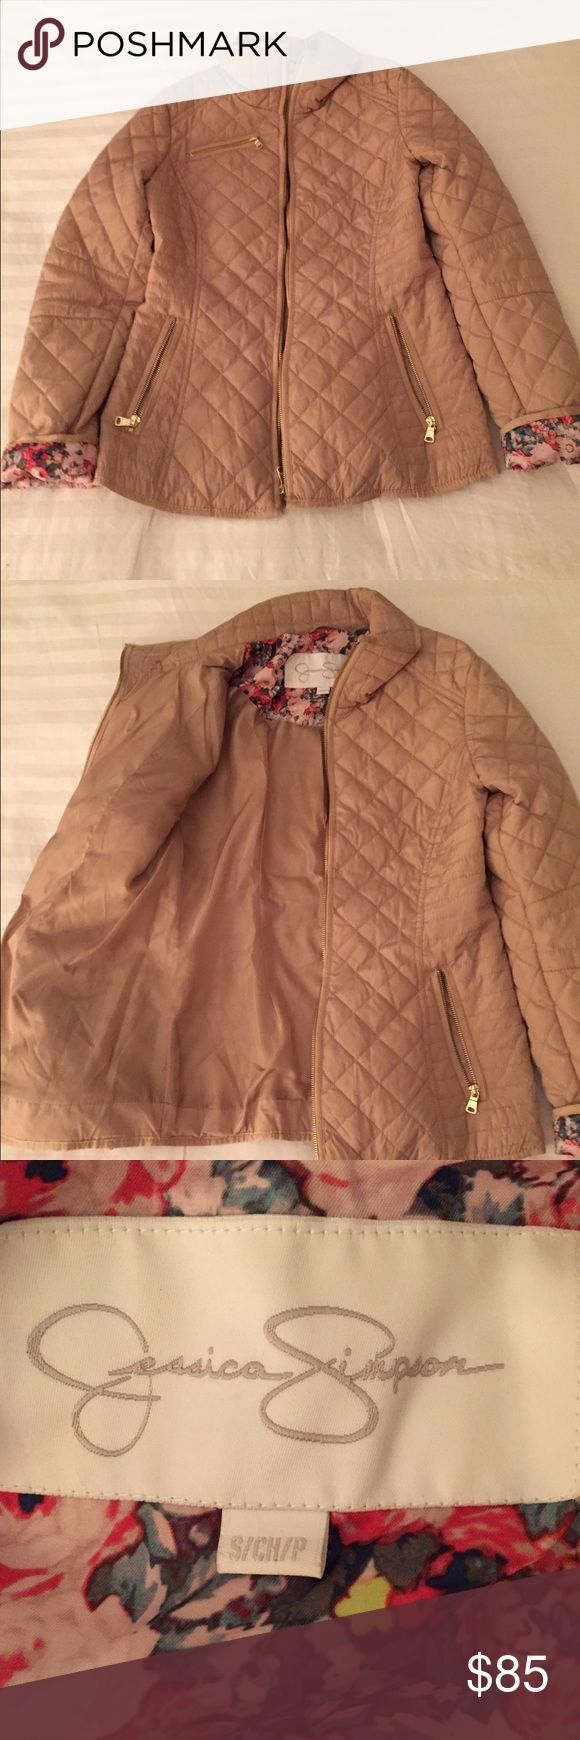 Small Jessica Simpson Beige Quilt stitched jacket Small Jessica Simpson Beige Quilt stitched jacket only worn once Jessica Simpson Jackets & Coats